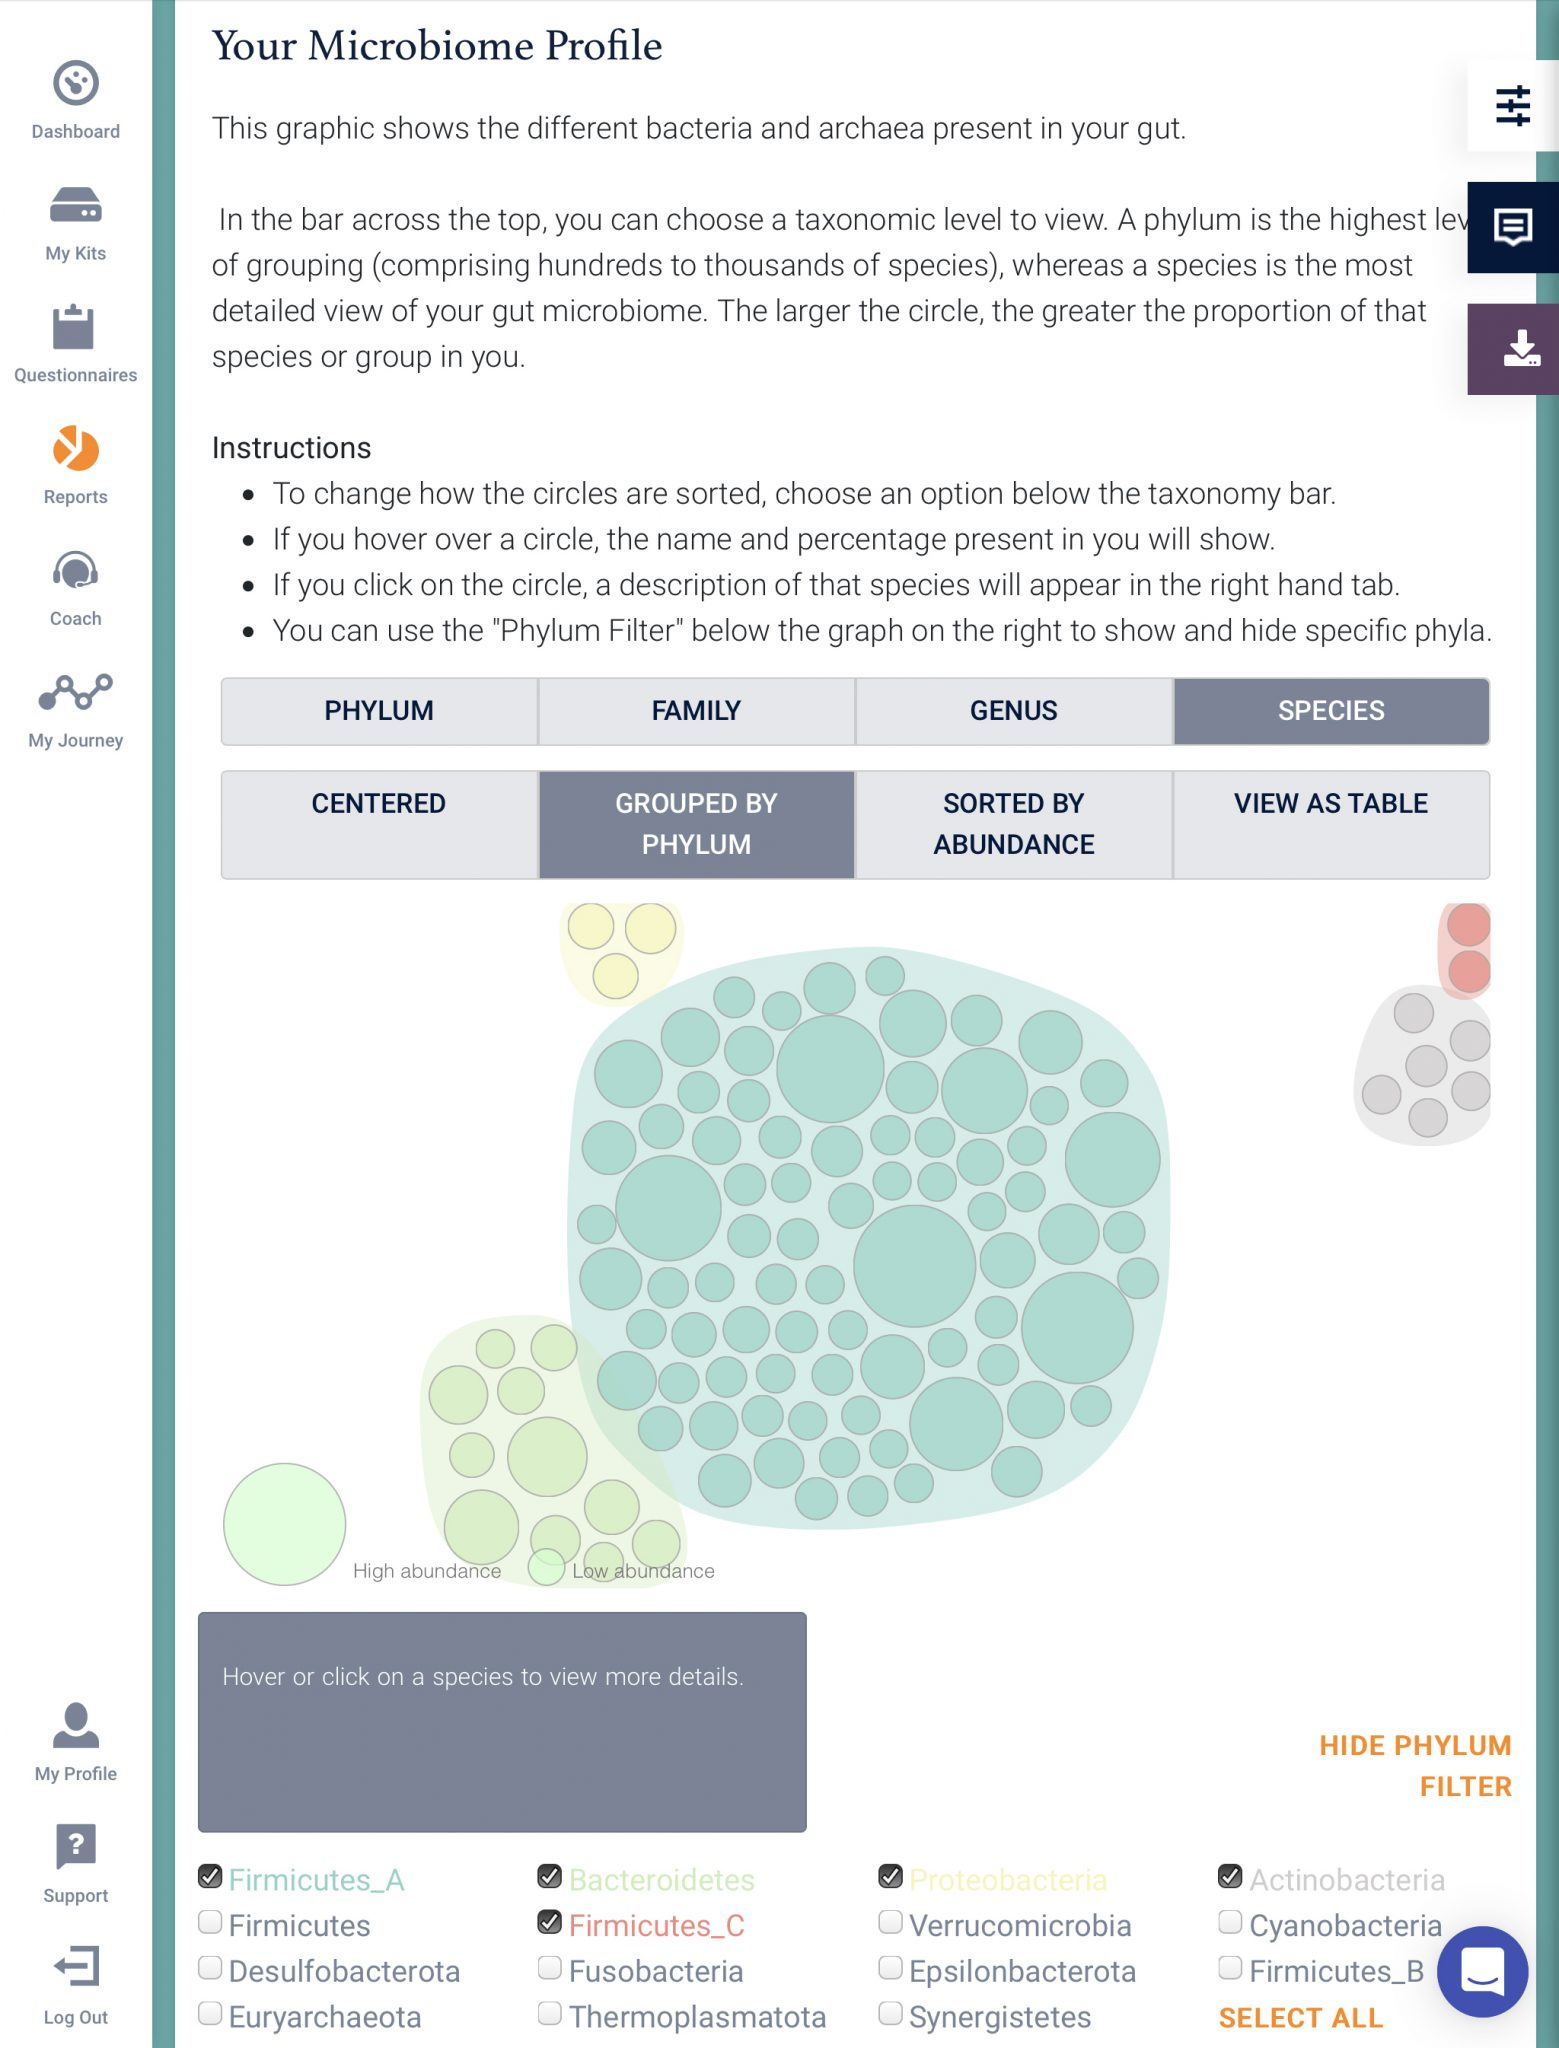 Microbia insight report analysis